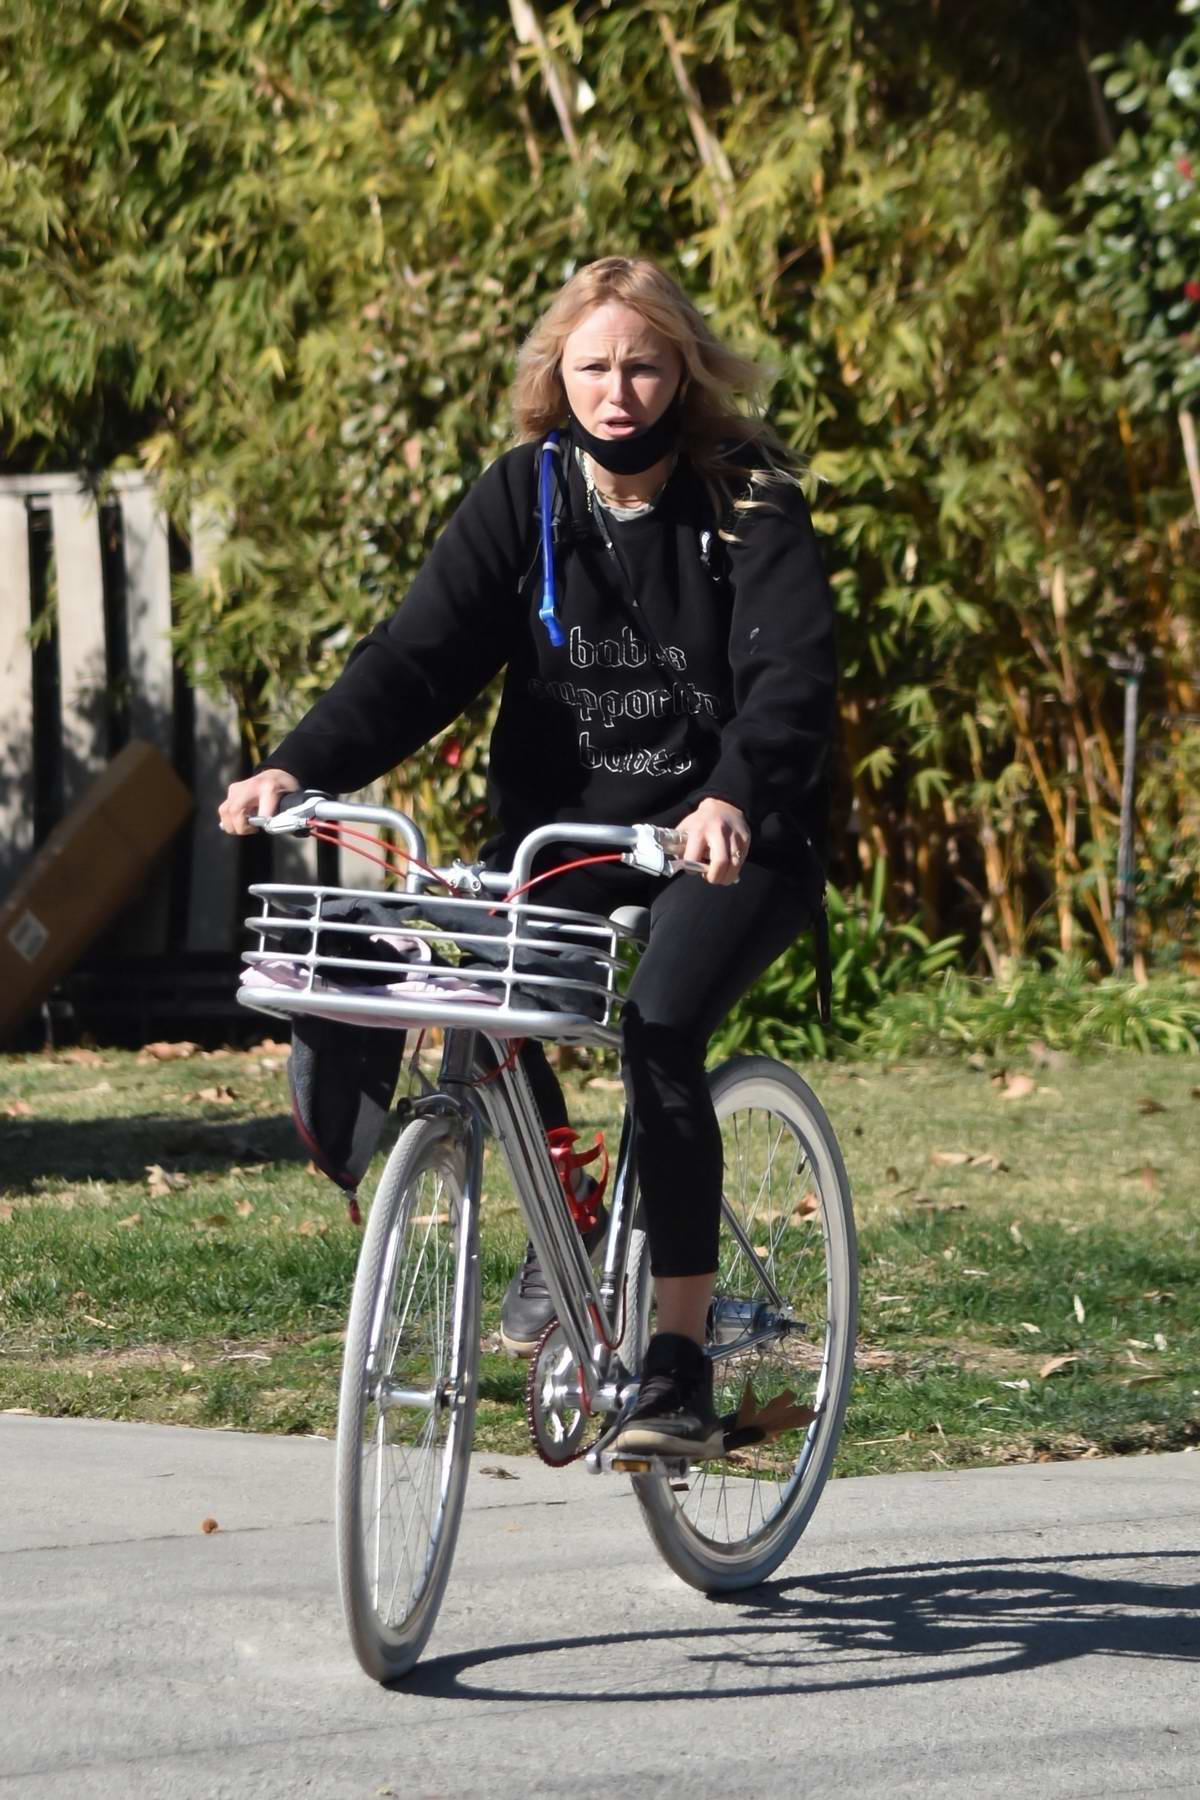 Malin Akerman goes for a bike ride around her neighborhood in Los Feliz, California